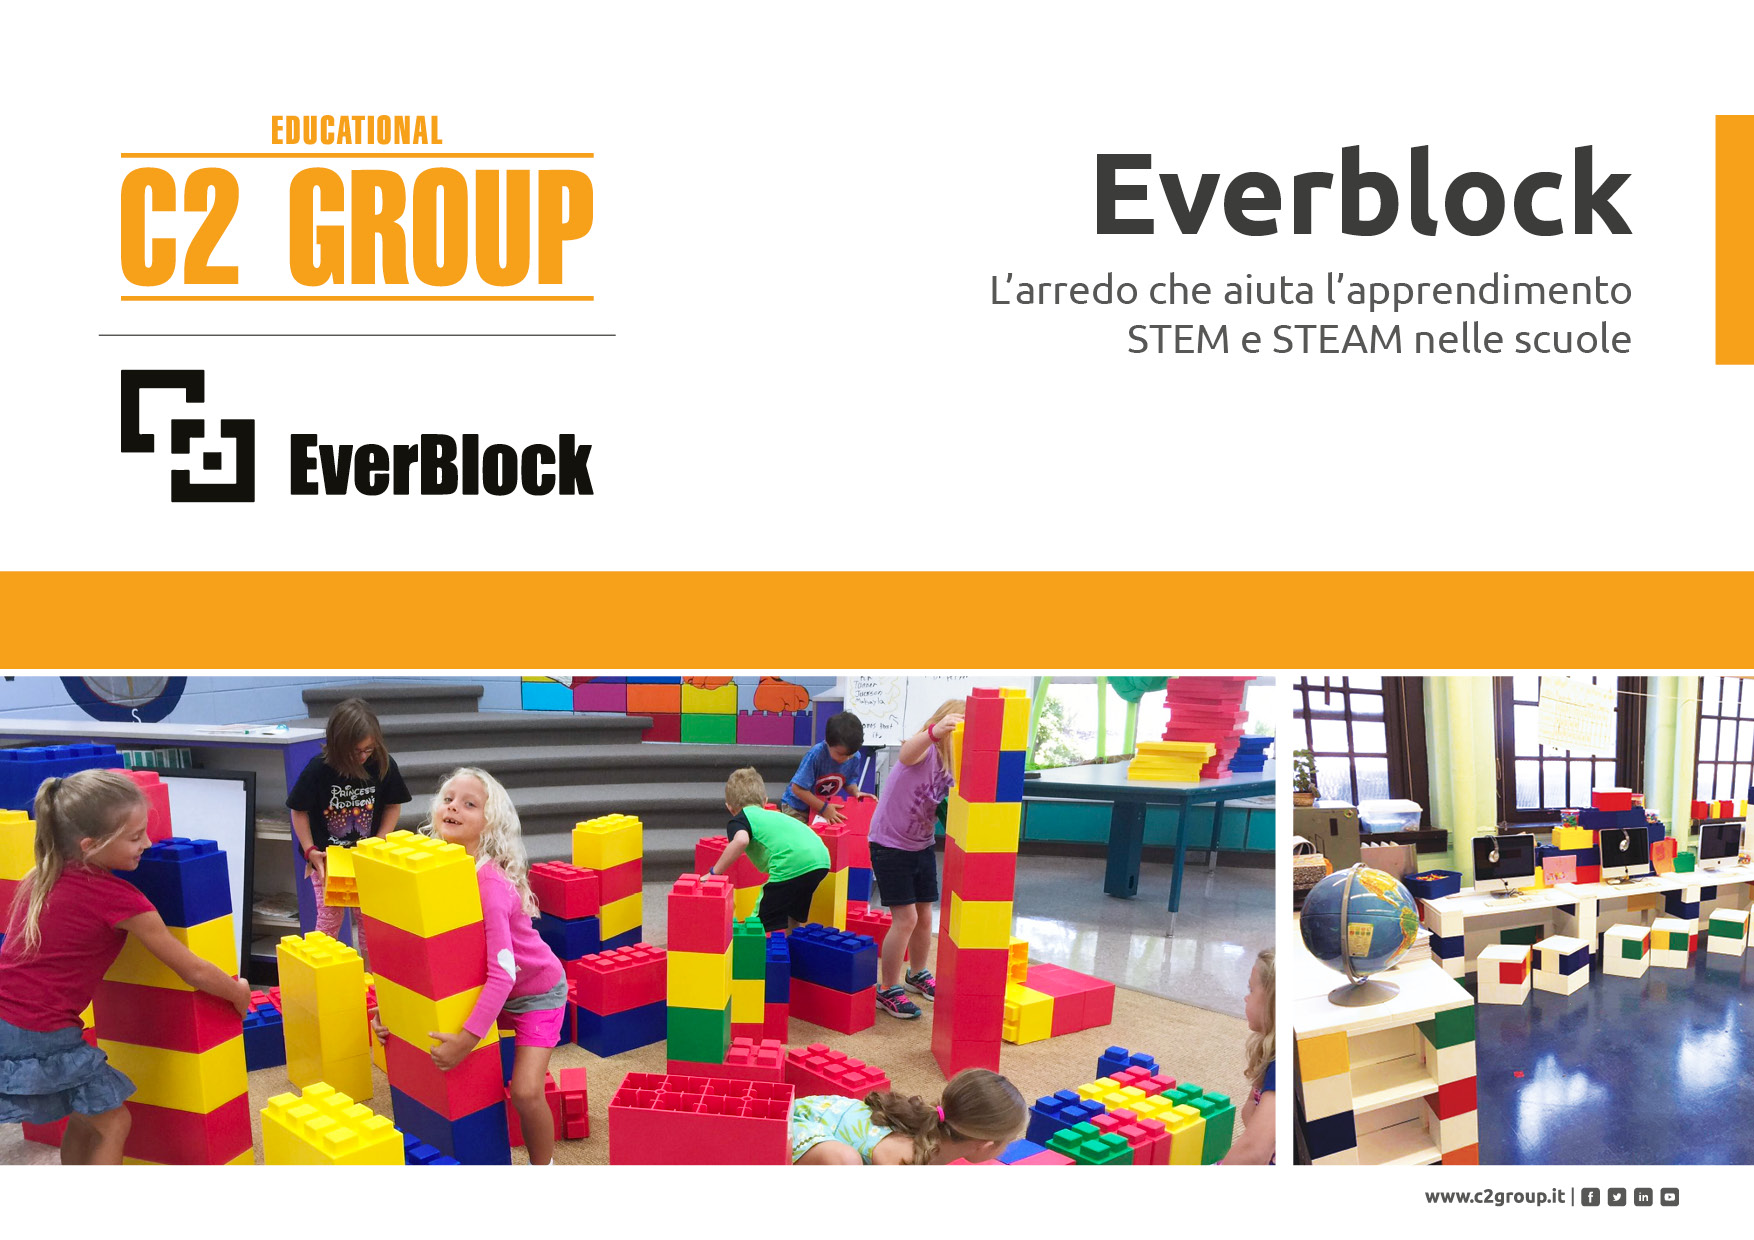 200107 c2group brochure everblock EDU